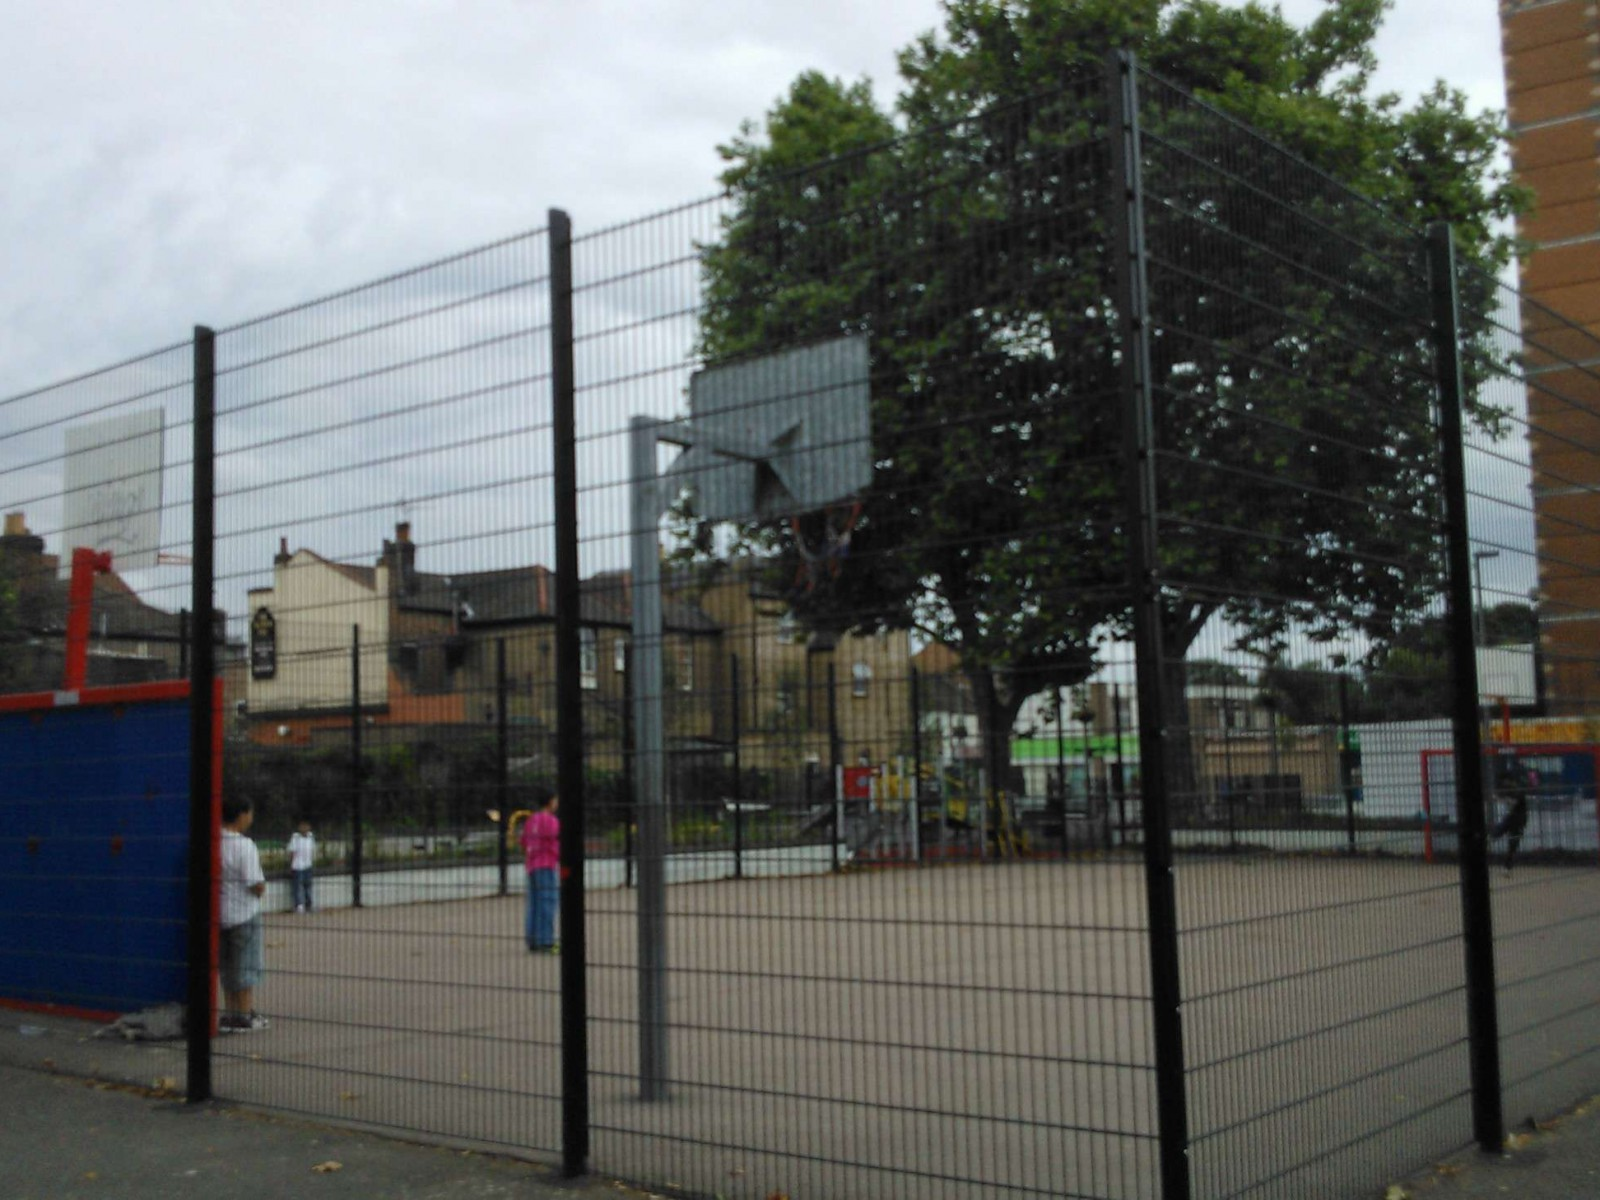 Wood Street Precinct Ball Court, London, United Kingdom